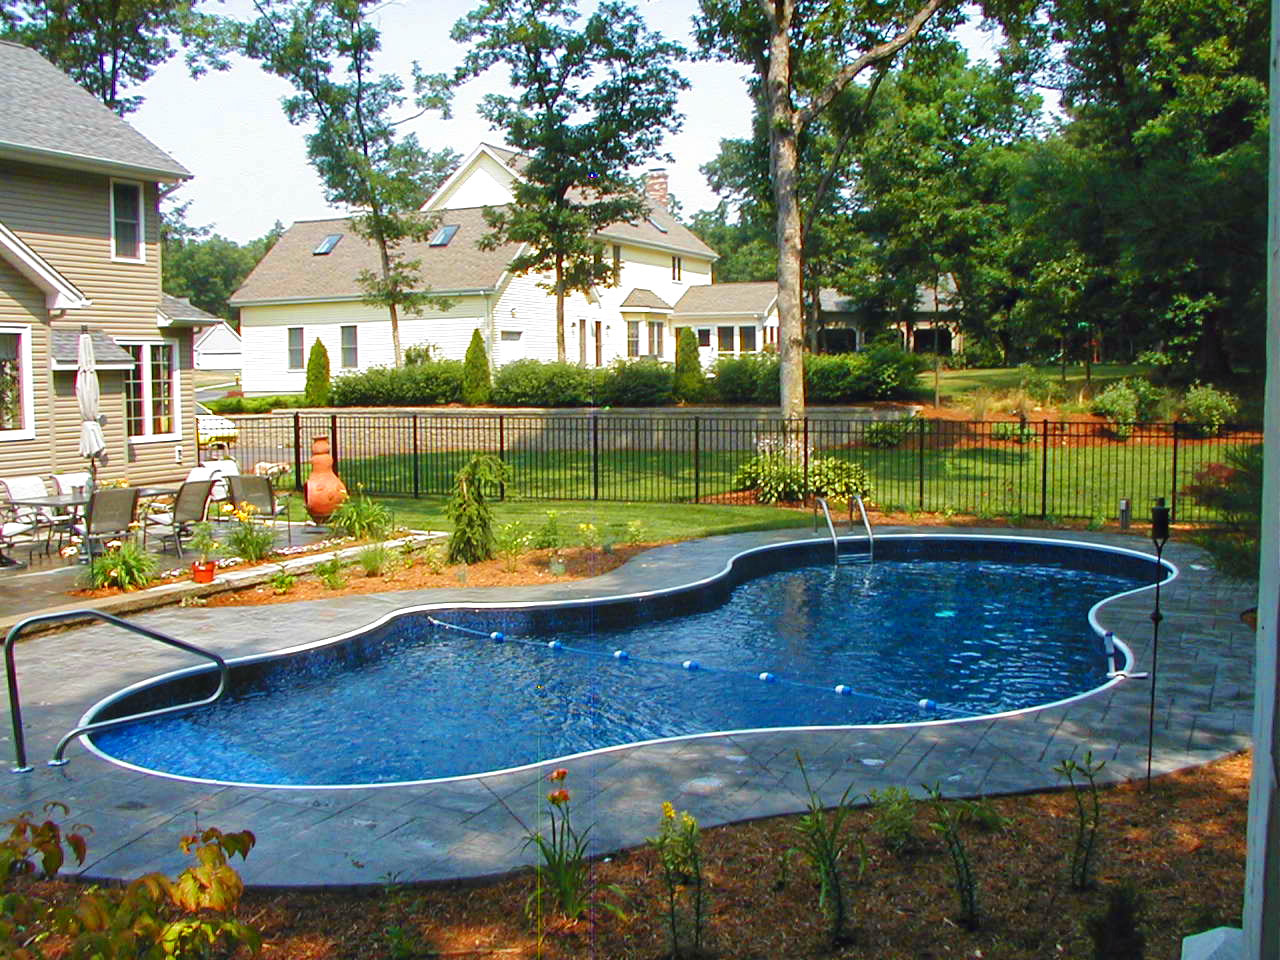 Tanguay pools swimming pool design installation repair - Swimming pool designs galleries ...